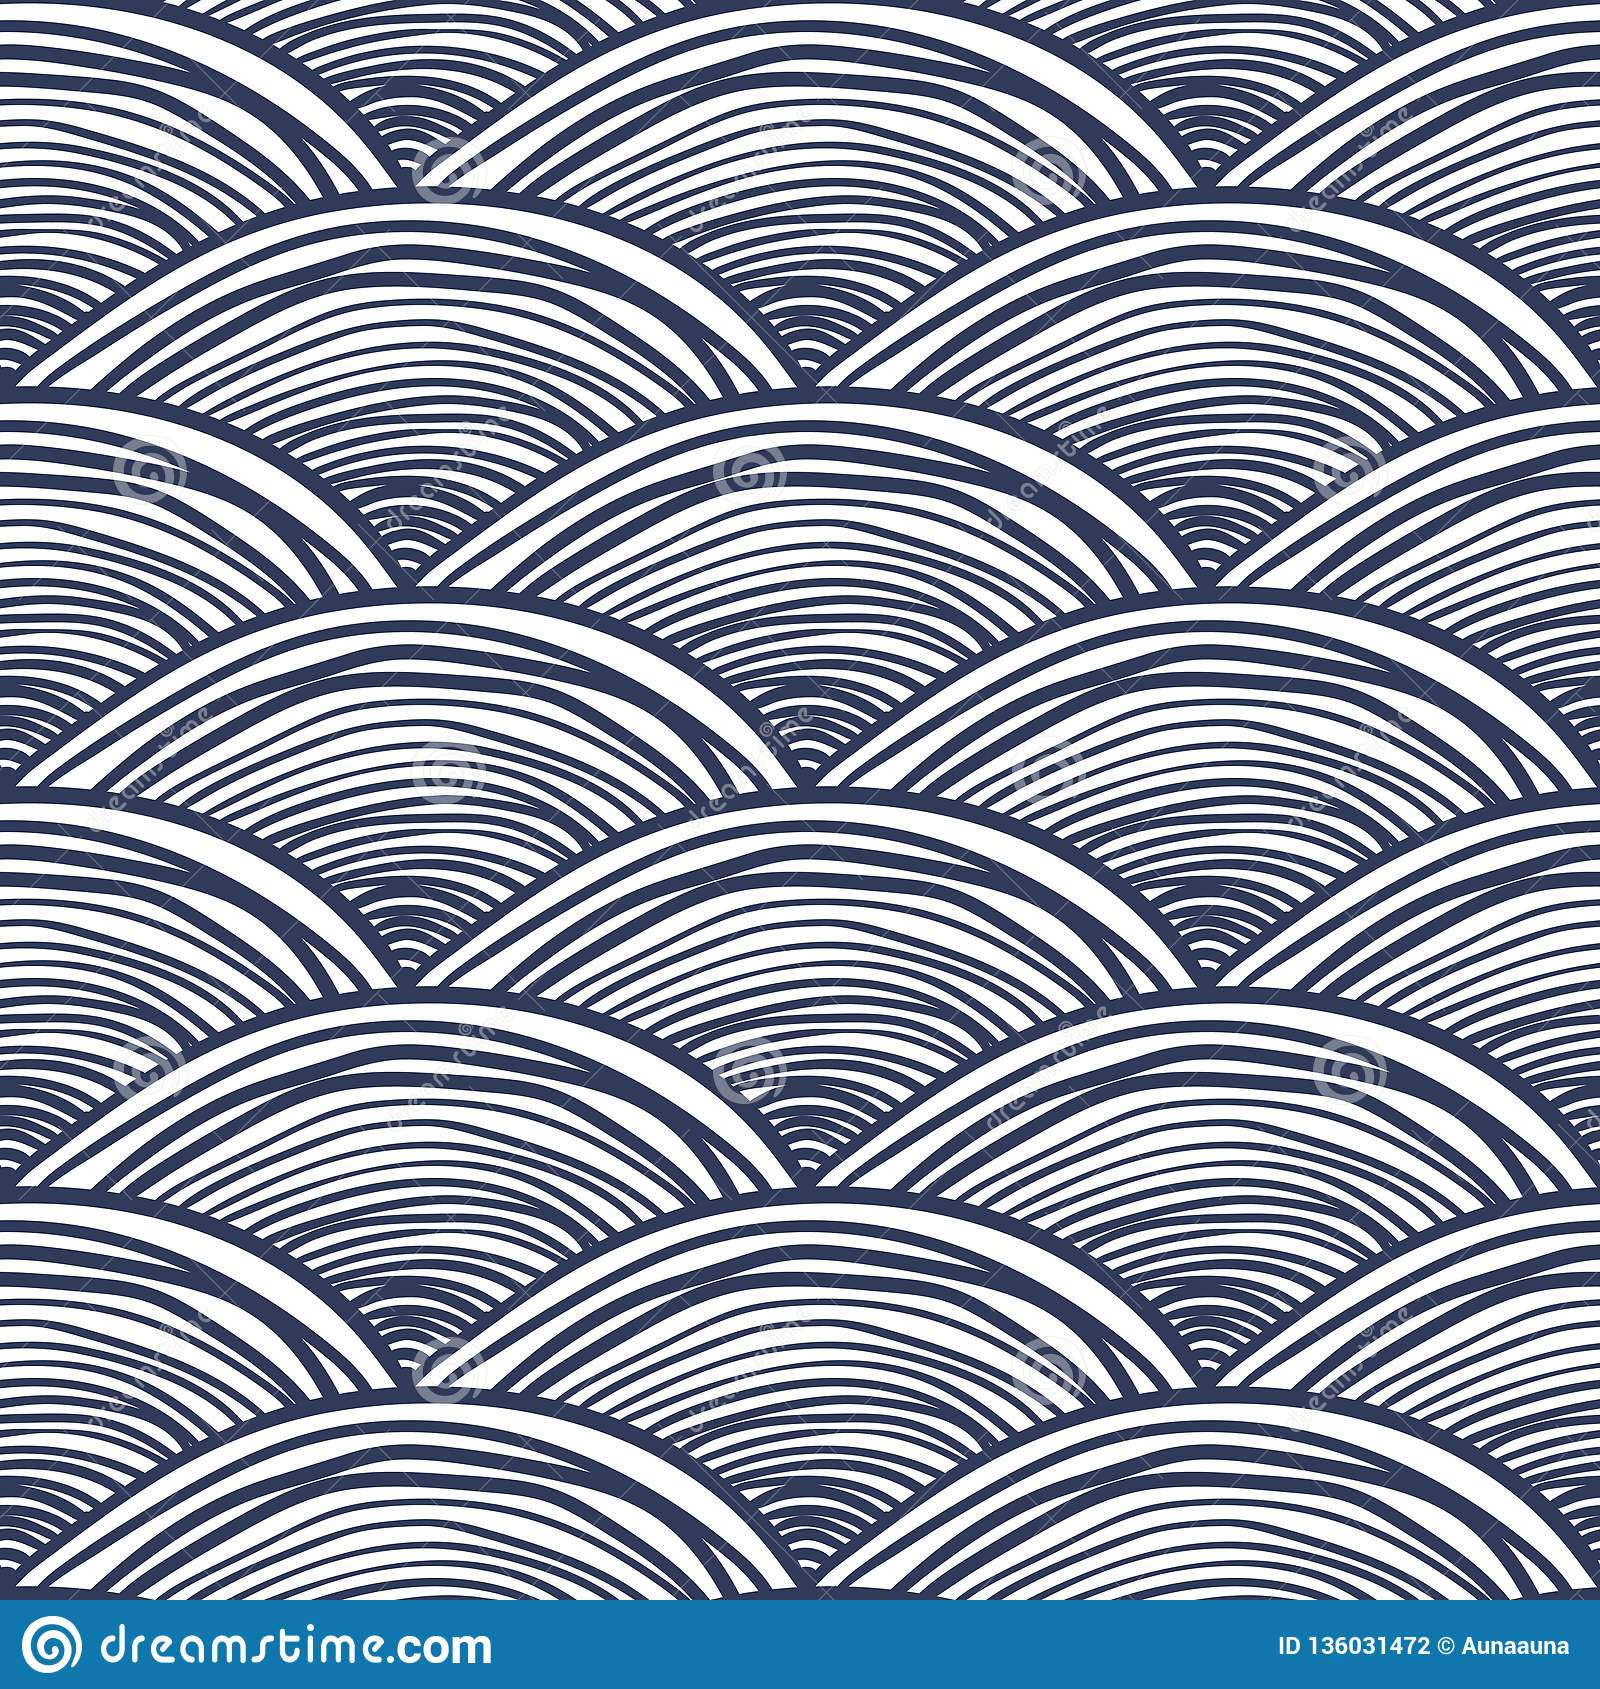 Waves background, abstract seamless pattern.